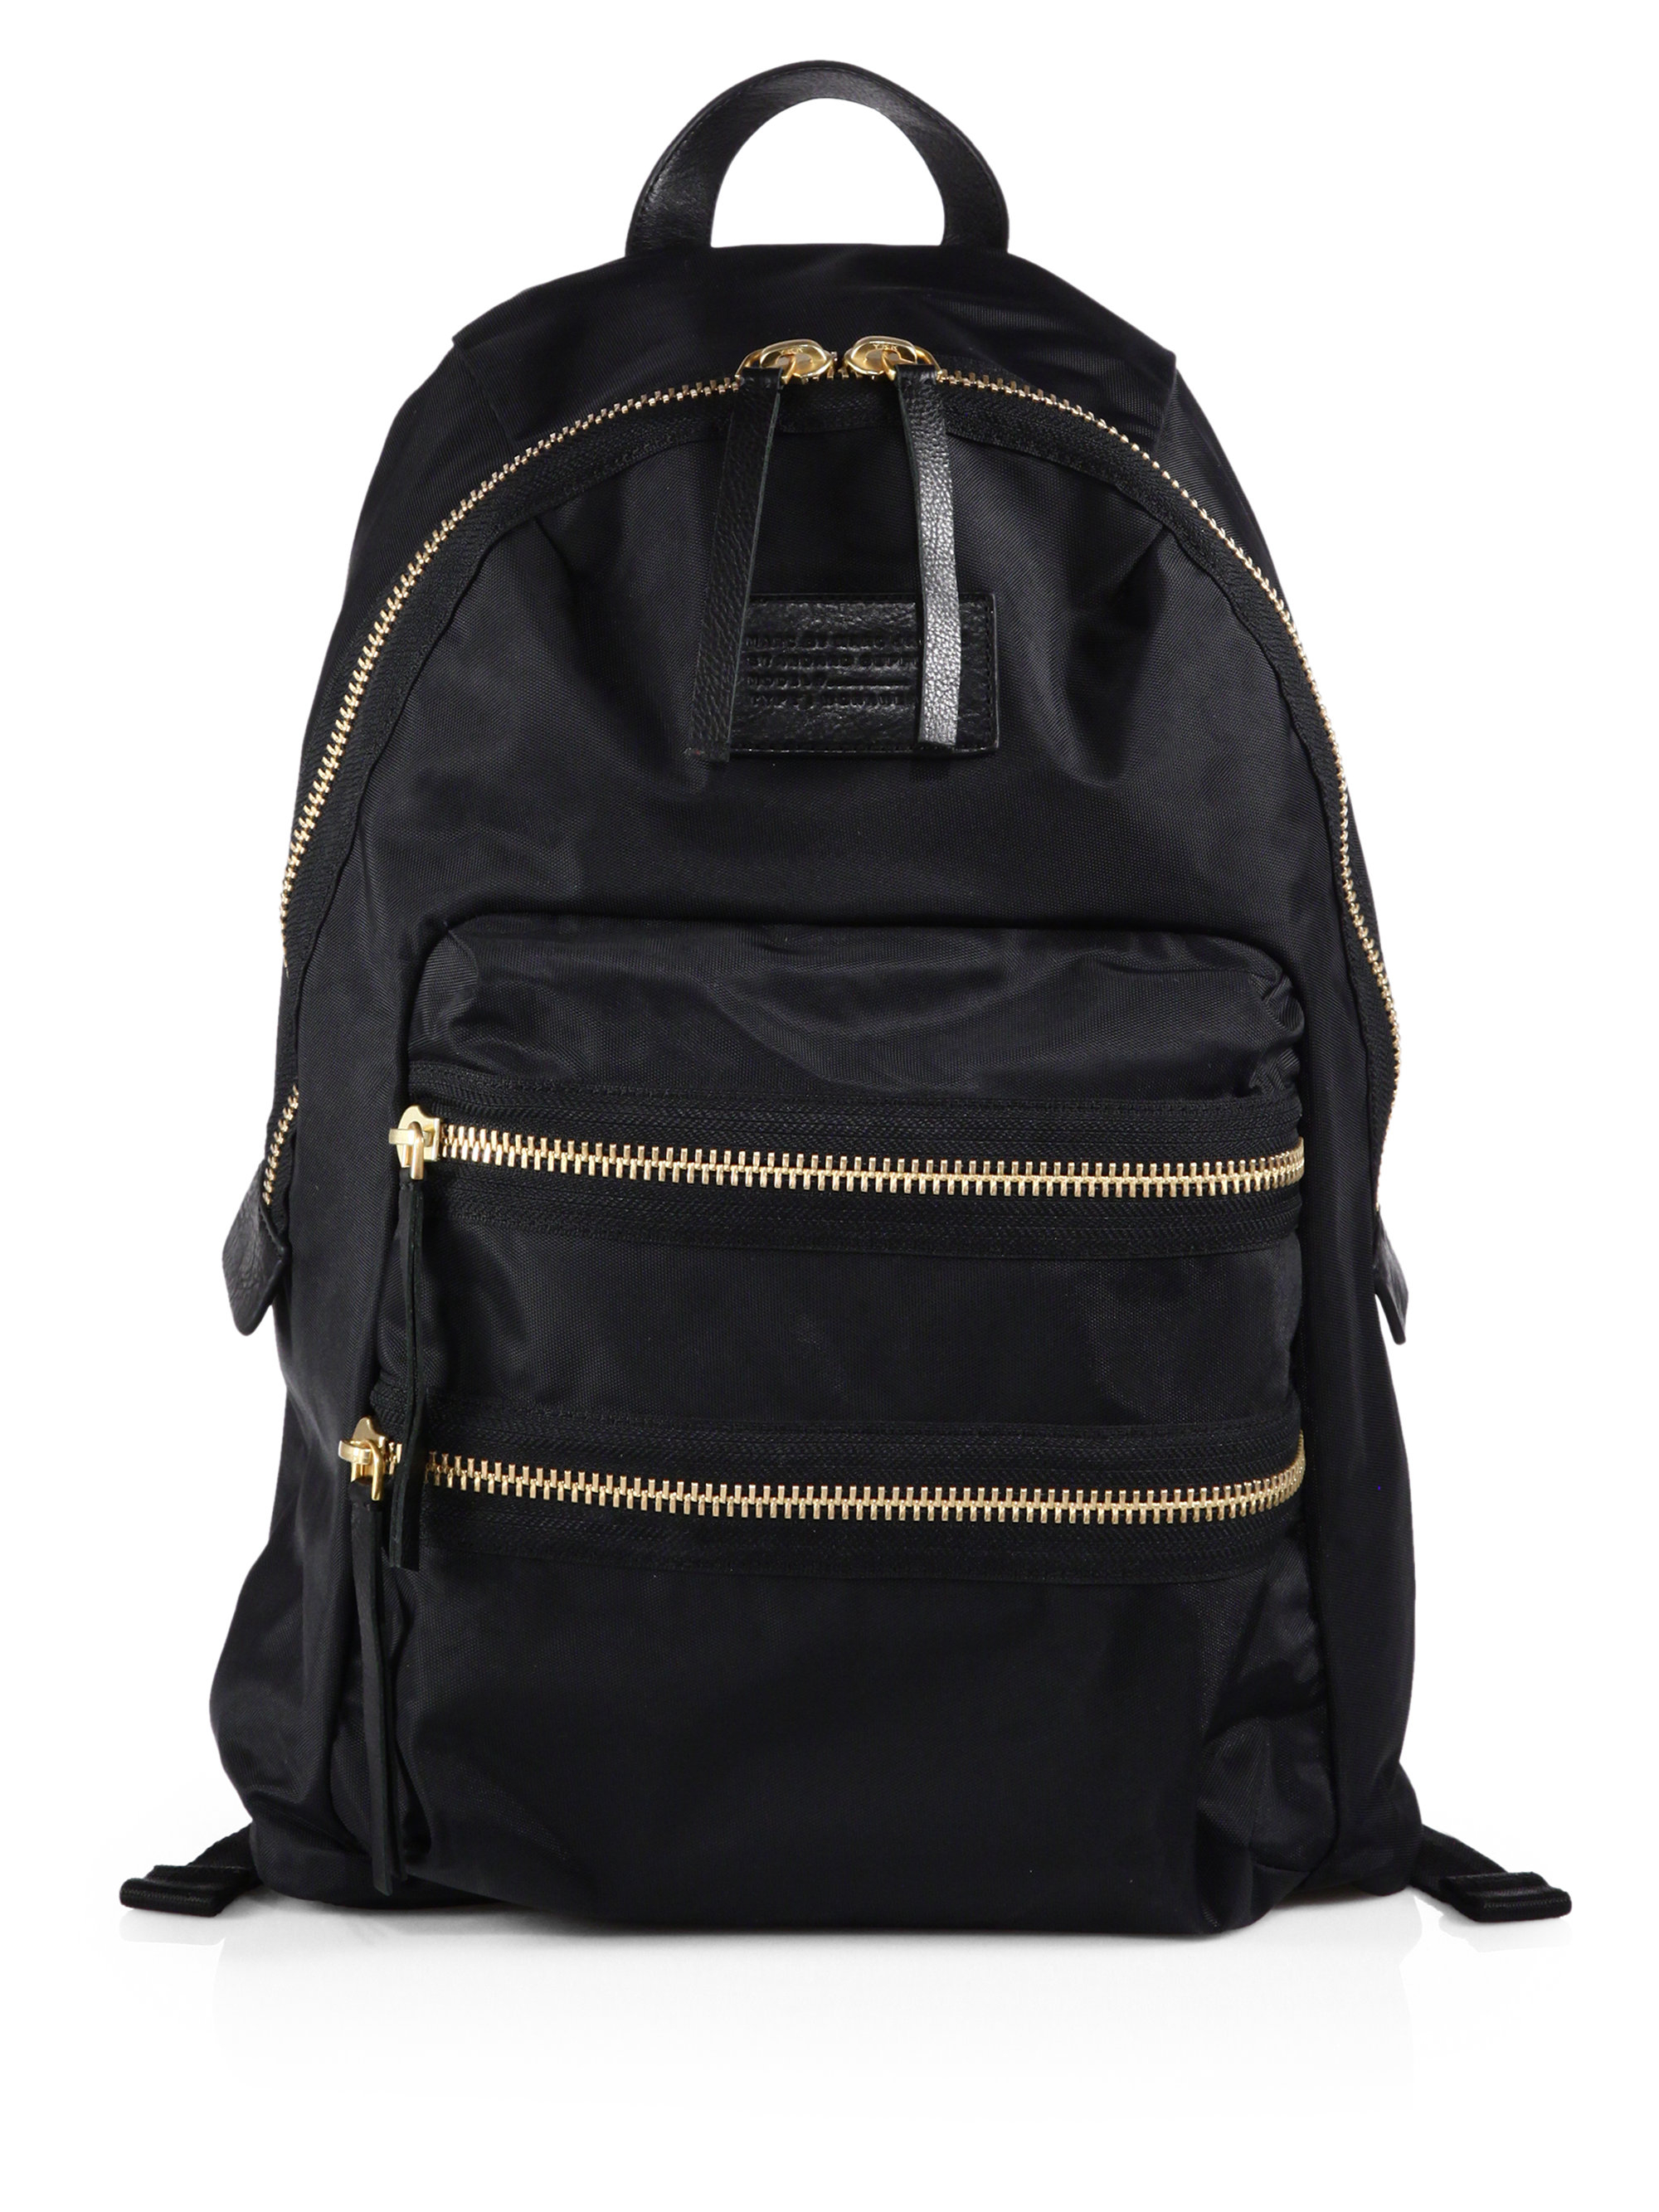 Marc By Marc Jacobs Fabric Backpack Black In Black For